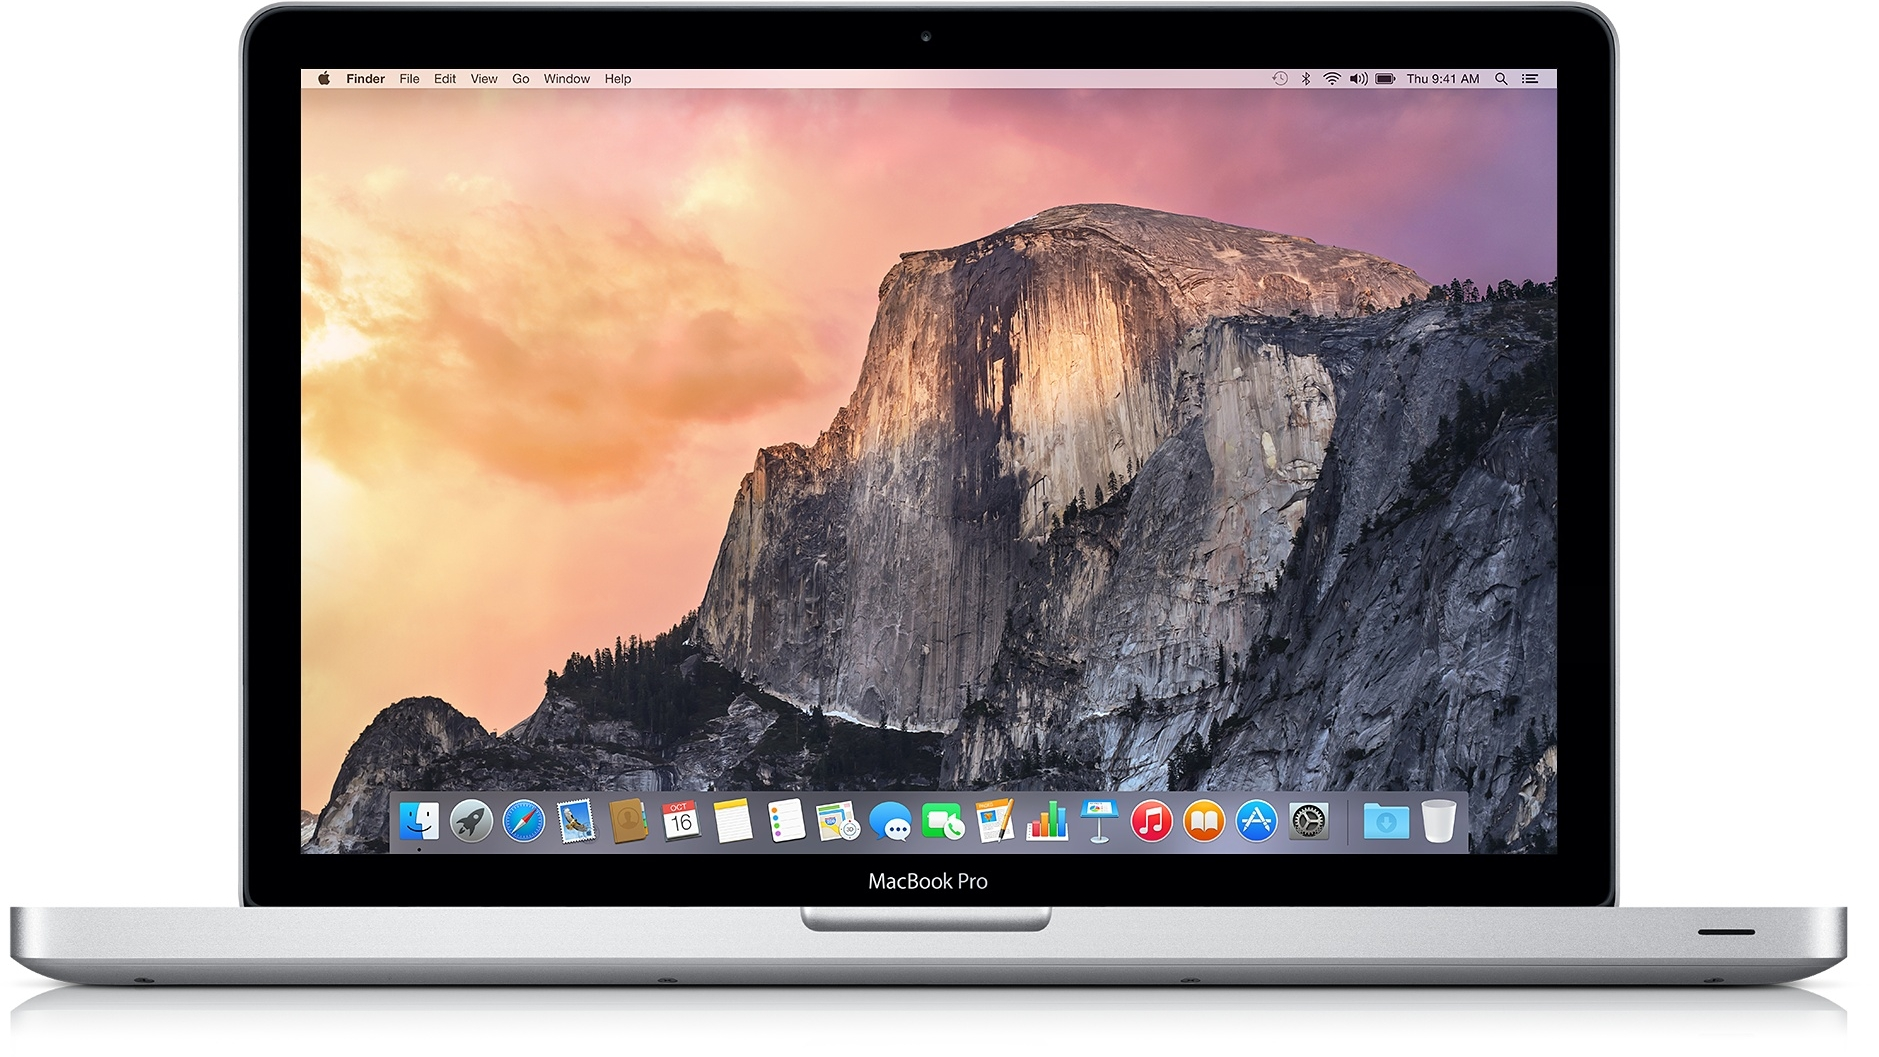 LOOKING FOR A MAC? - Check out our Mac recommendations,to fit almost any budget.